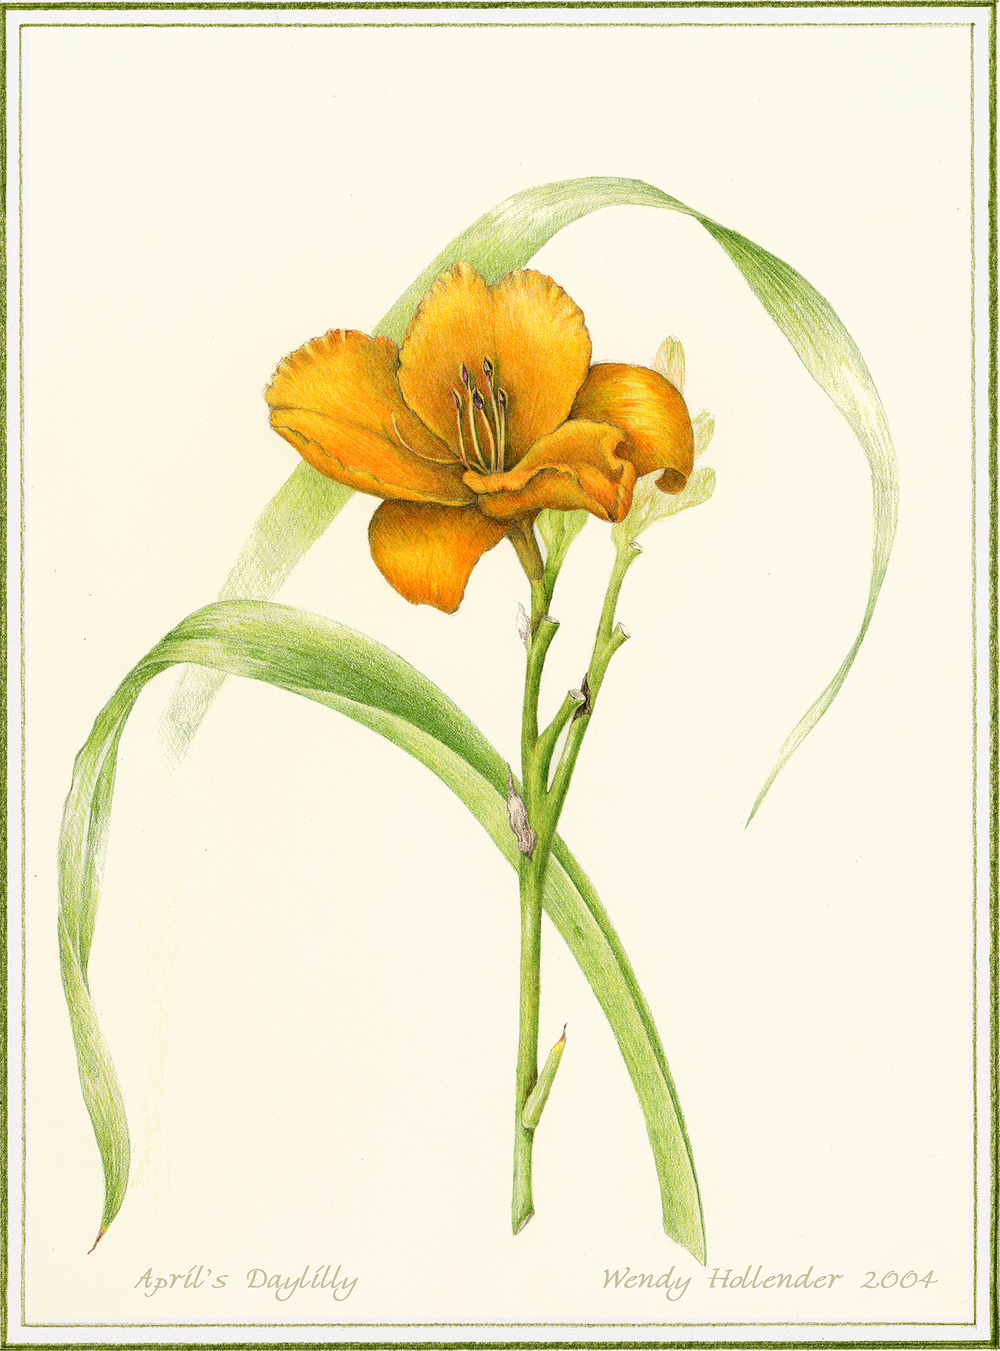 April's Daylily